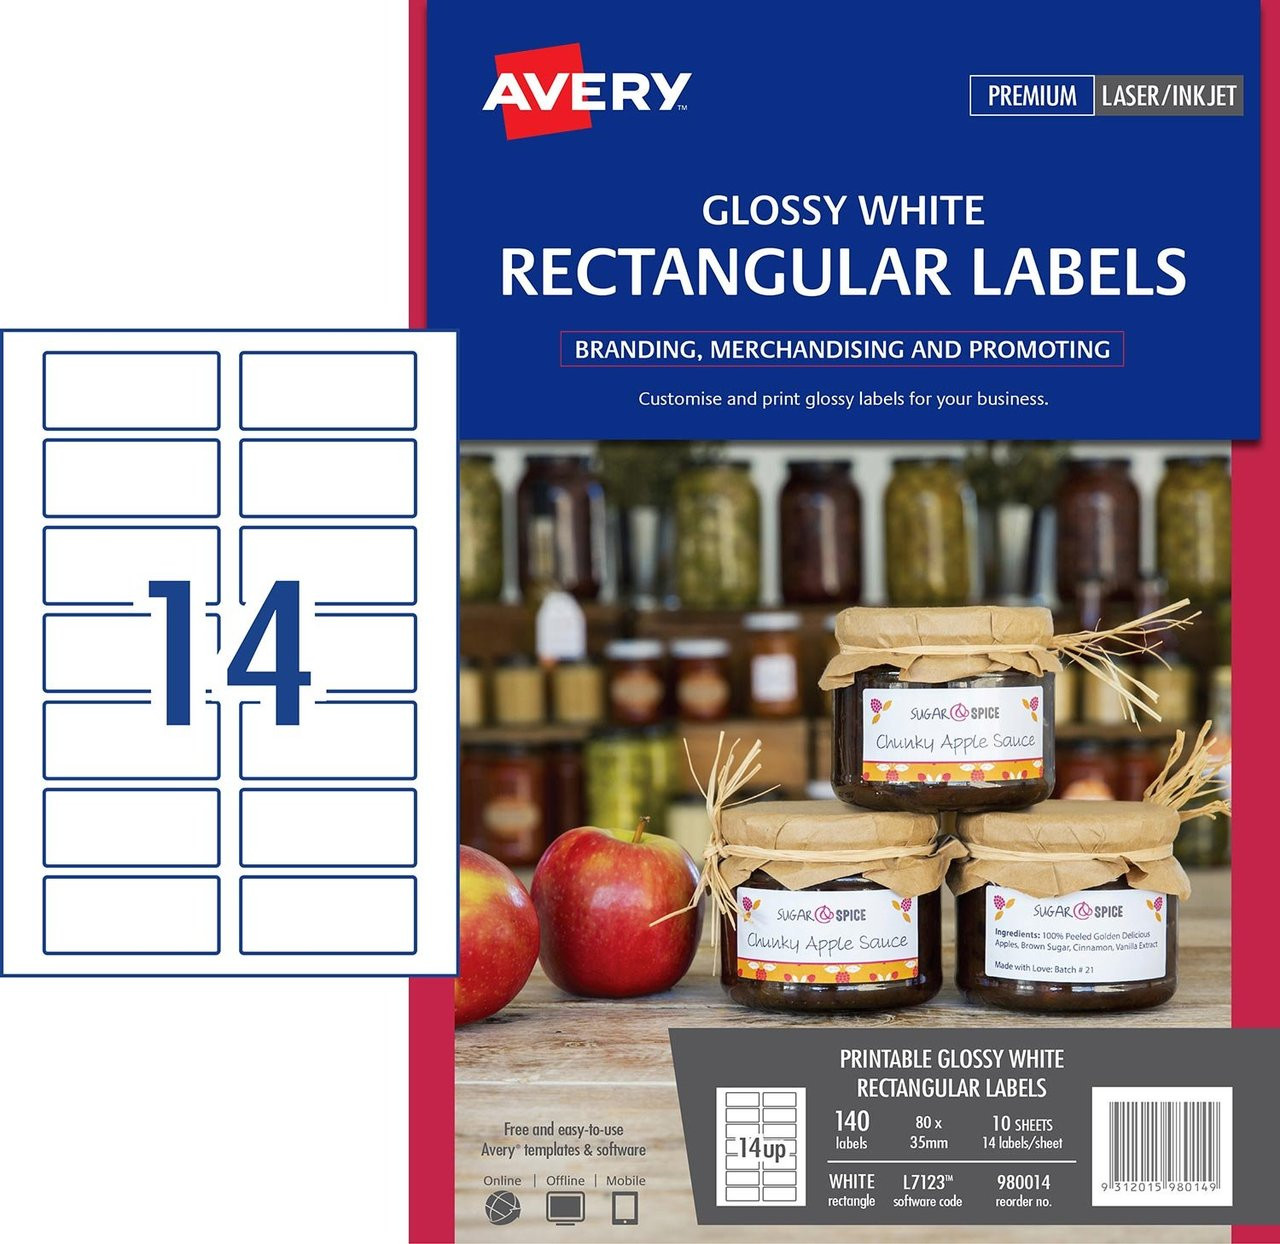 16634d3c8647 AVERY 980014 GLOSSY WHITE RECTANGULAR PRODUCT LABELS - L7123 - 140/PACK -  80 X 35 MM |14UP